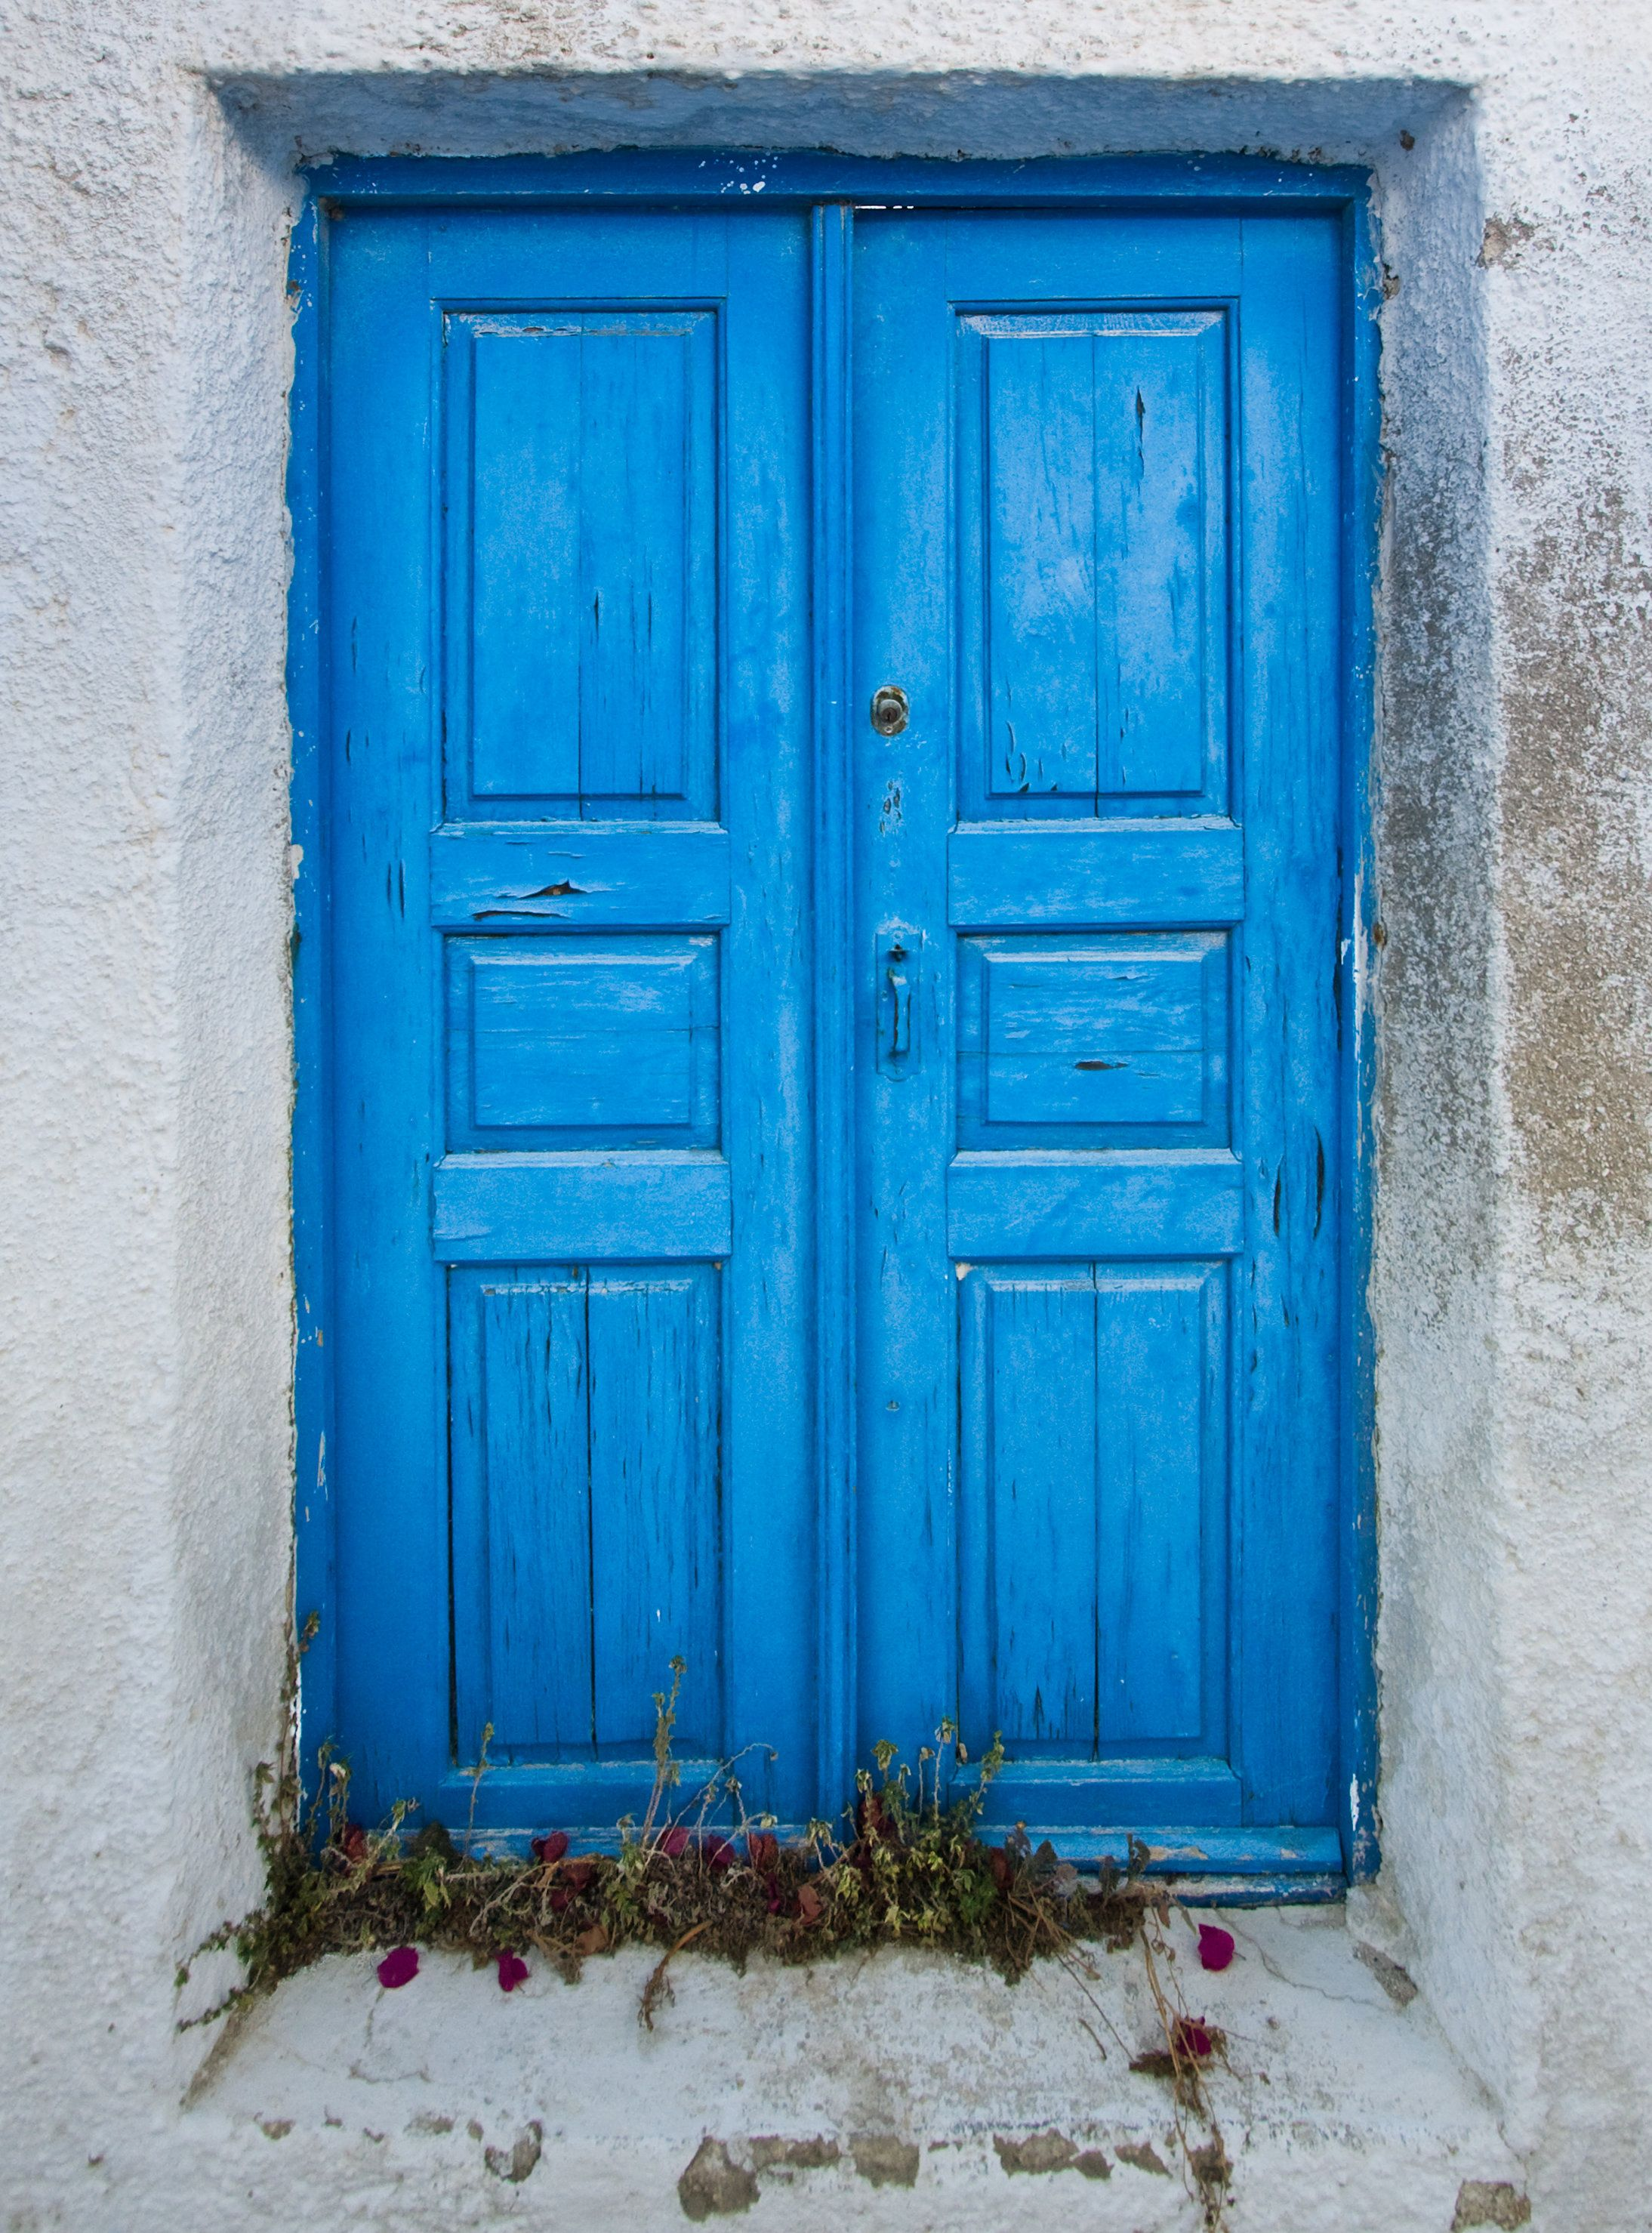 Bright Blue Shutters Give A Building A Mediterranean Feel